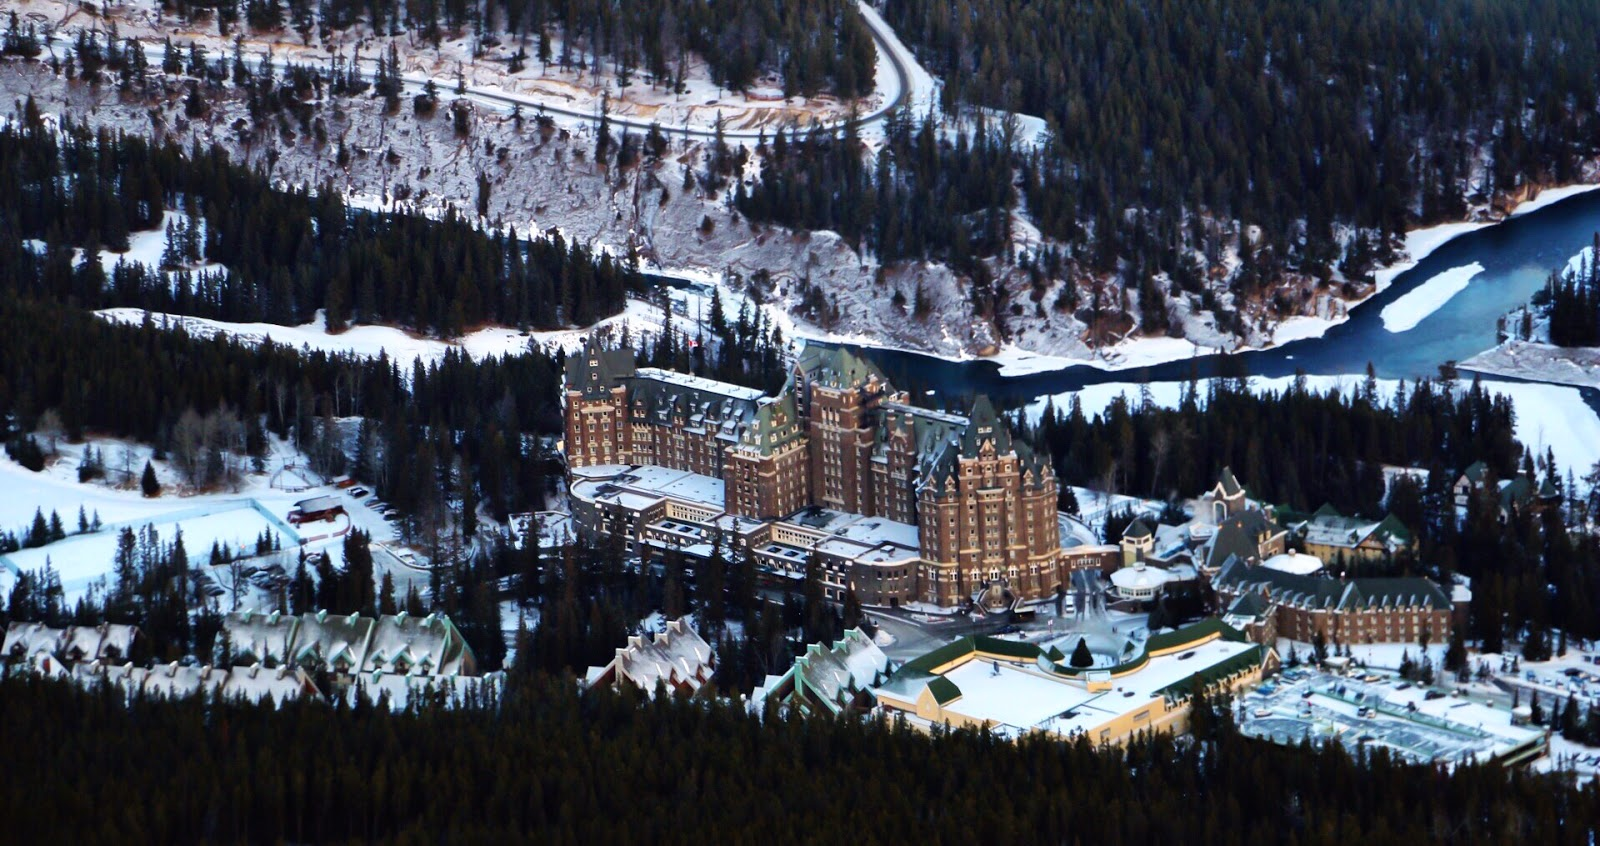 Fairmont Banff Springs as seen from Sulphur Mountain Alberta Canada by Jessica Mack (aka SweetDivergence)